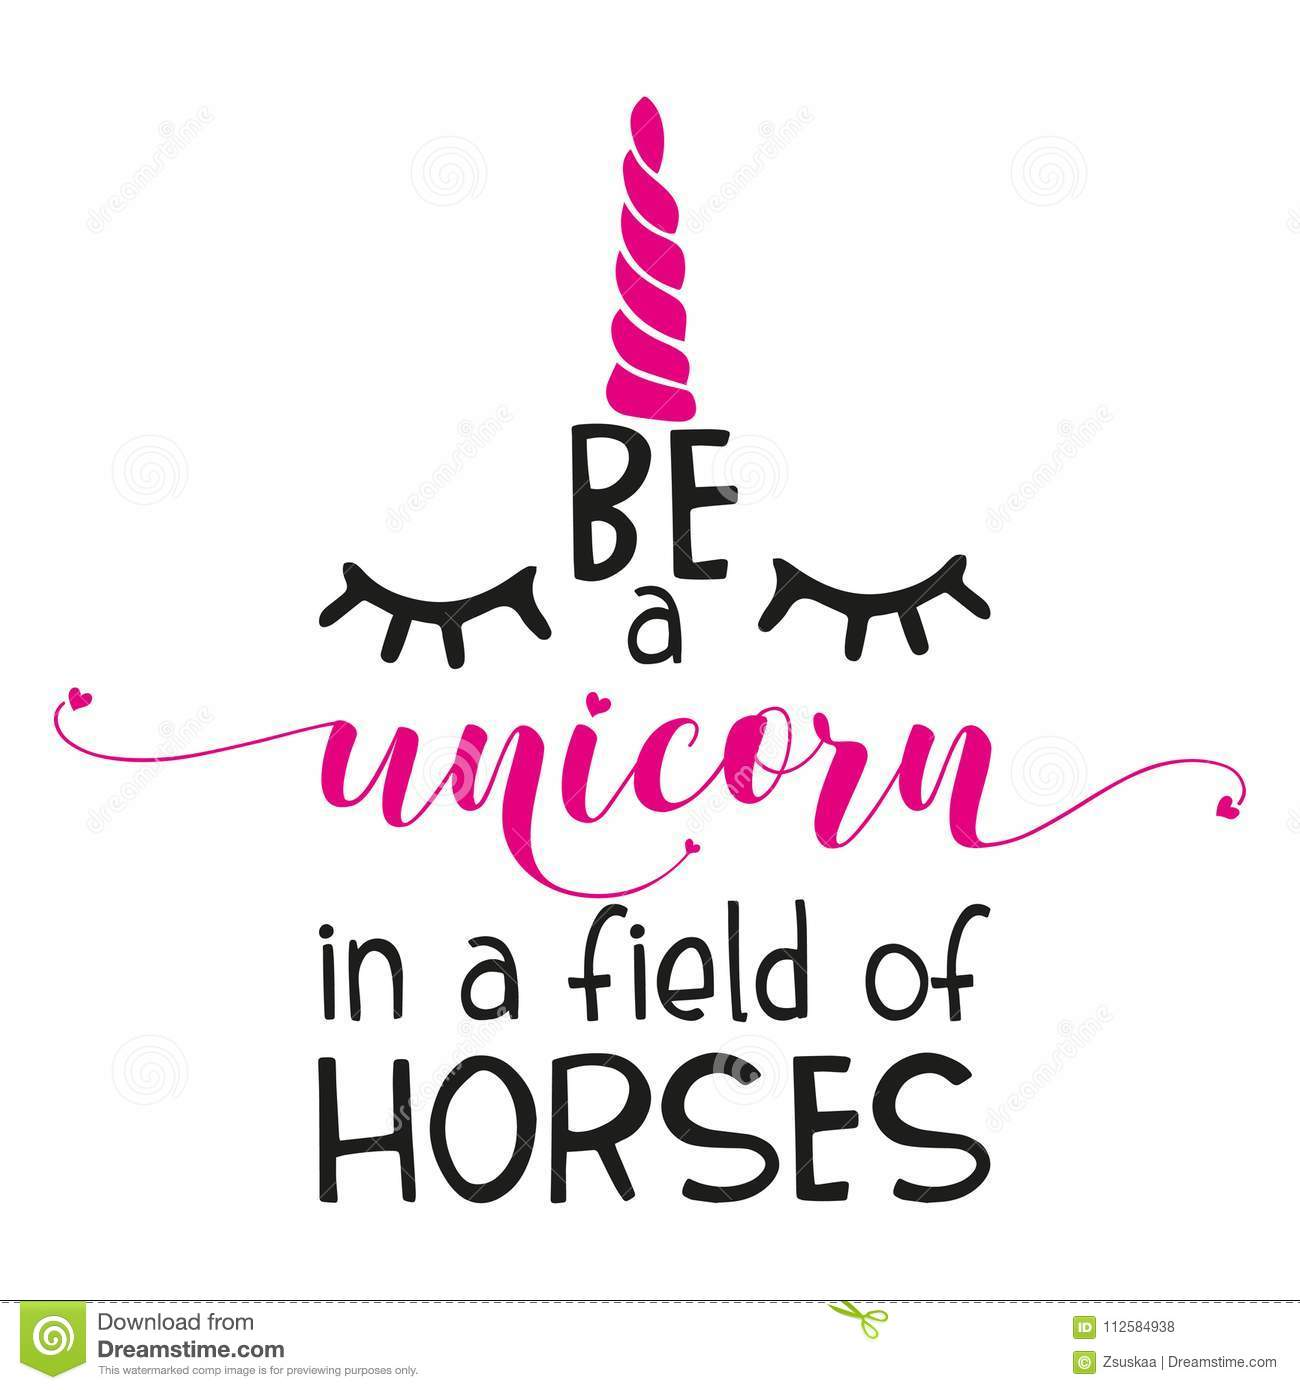 photo regarding Be a Unicorn in a Field of Horses Free Printable named The Inspirational Estimate: `Be A Unicorn Within A Marketplace Of Horses